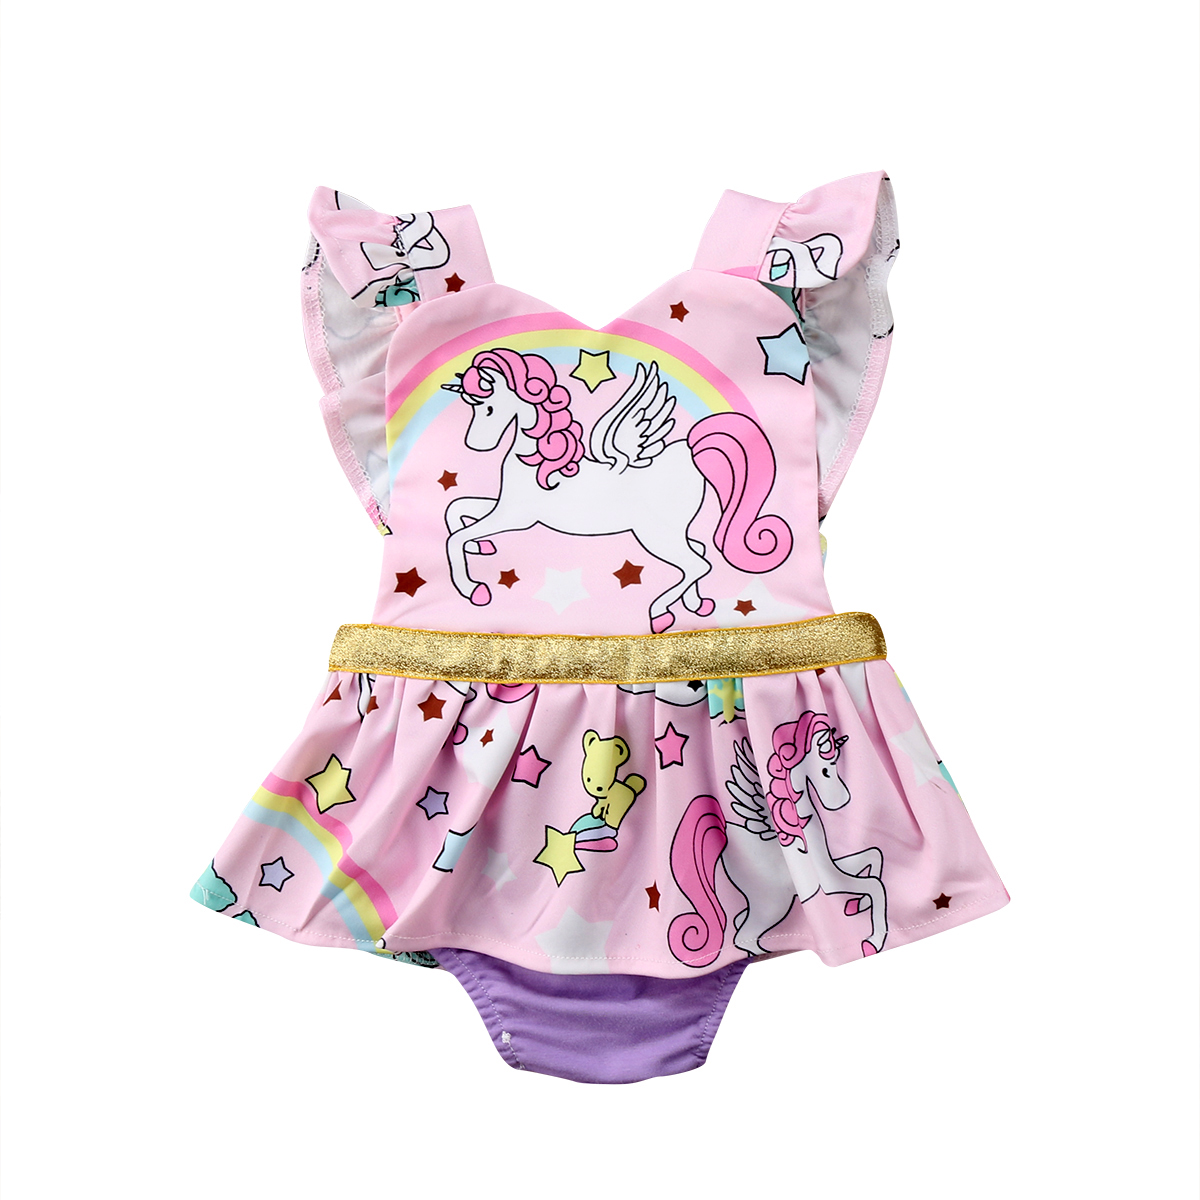 a3ae3ae48 Detail Feedback Questions about Cute Newborn Infant Baby Girls ...